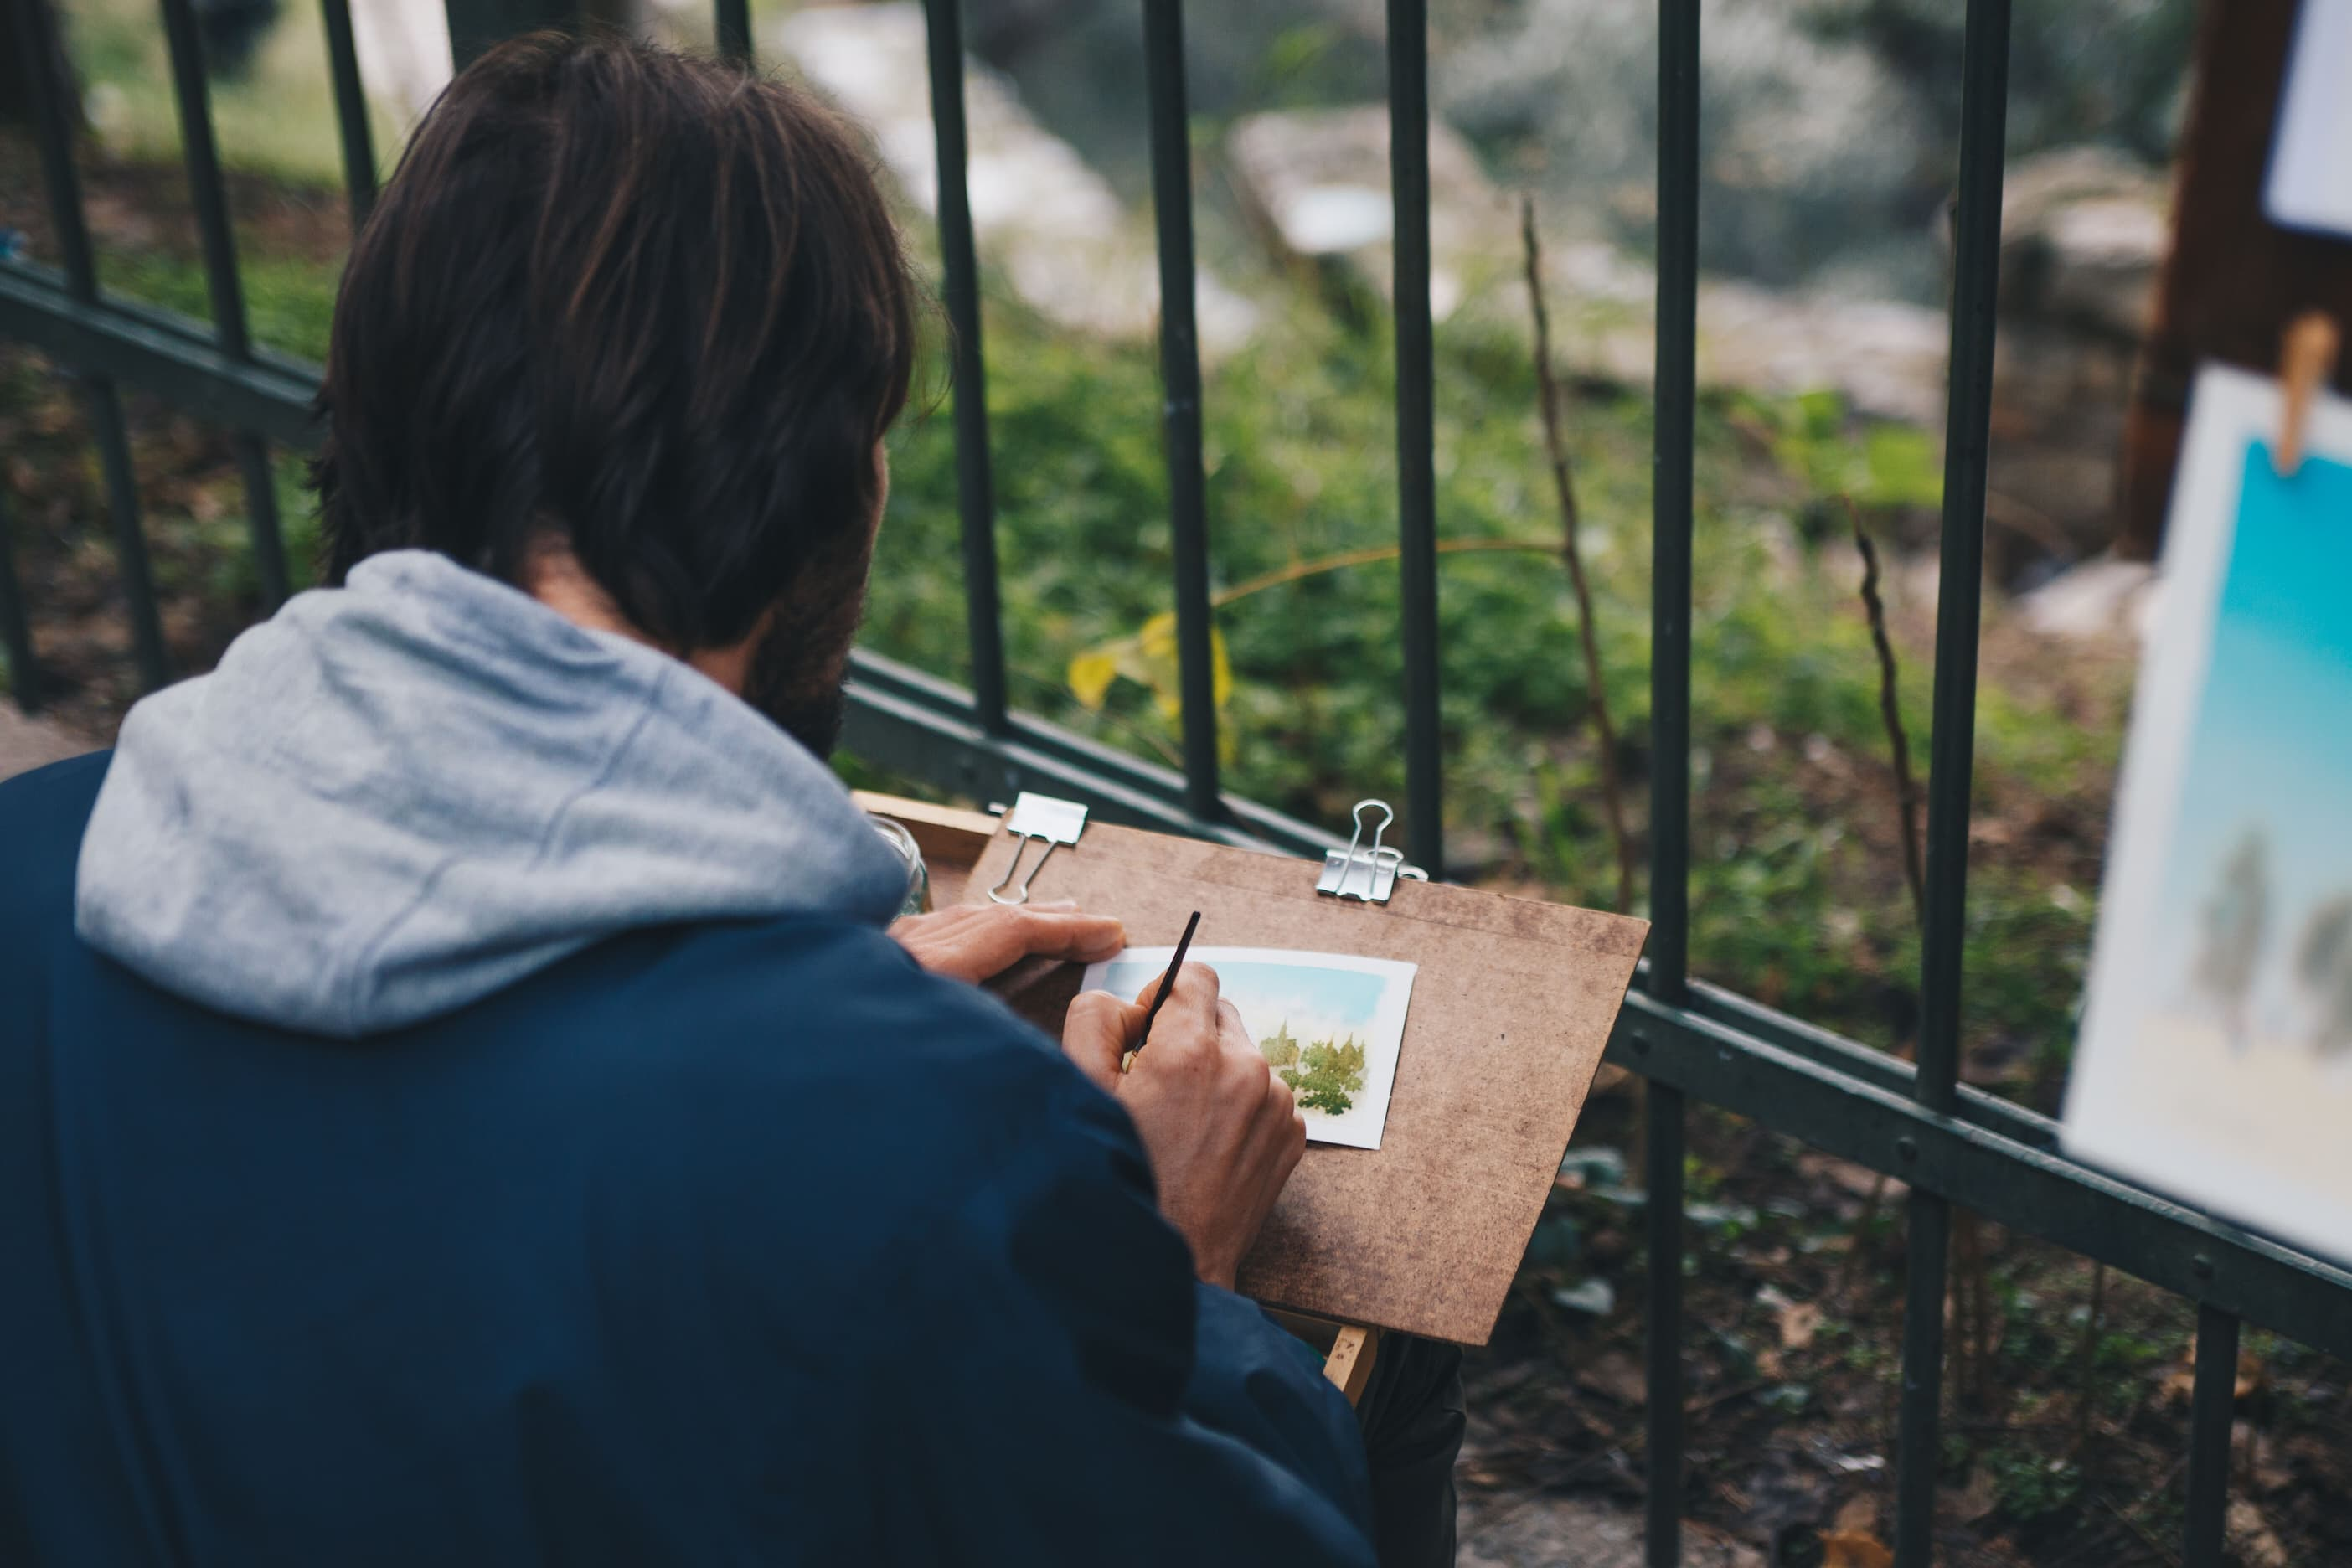 Tips to remember when building a portfolio for your freelance business